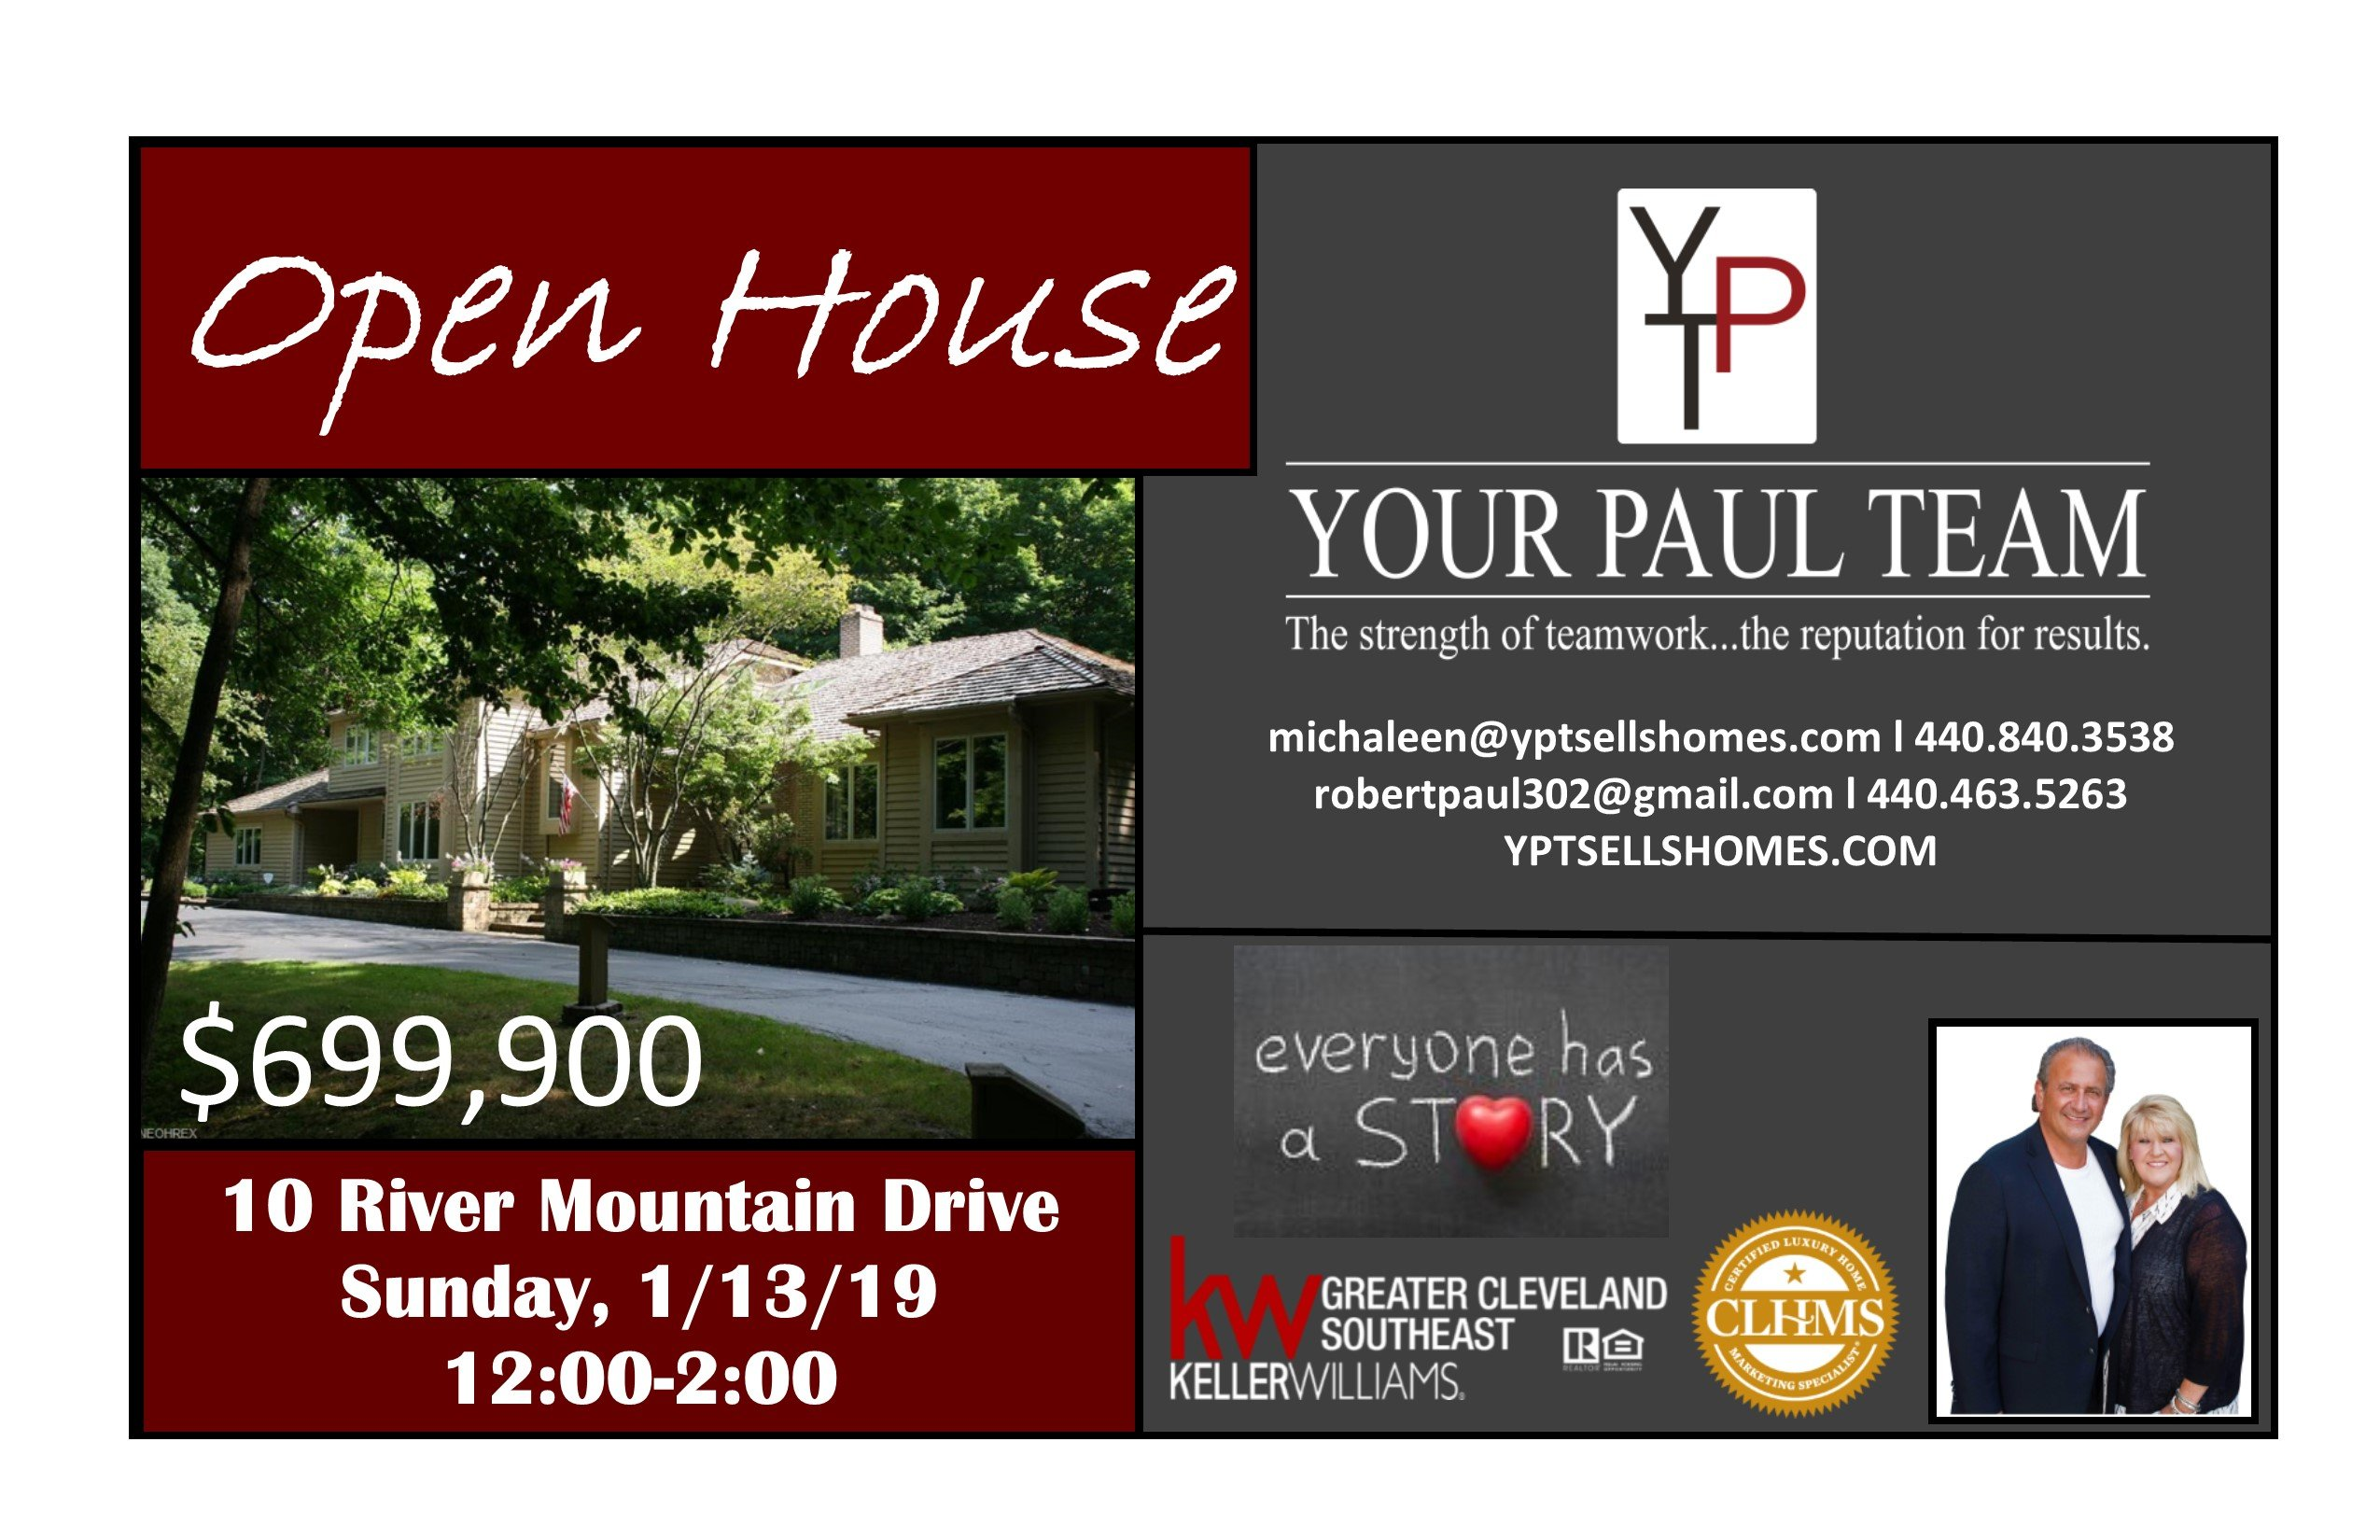 Open House this Sunday 1-13-19!